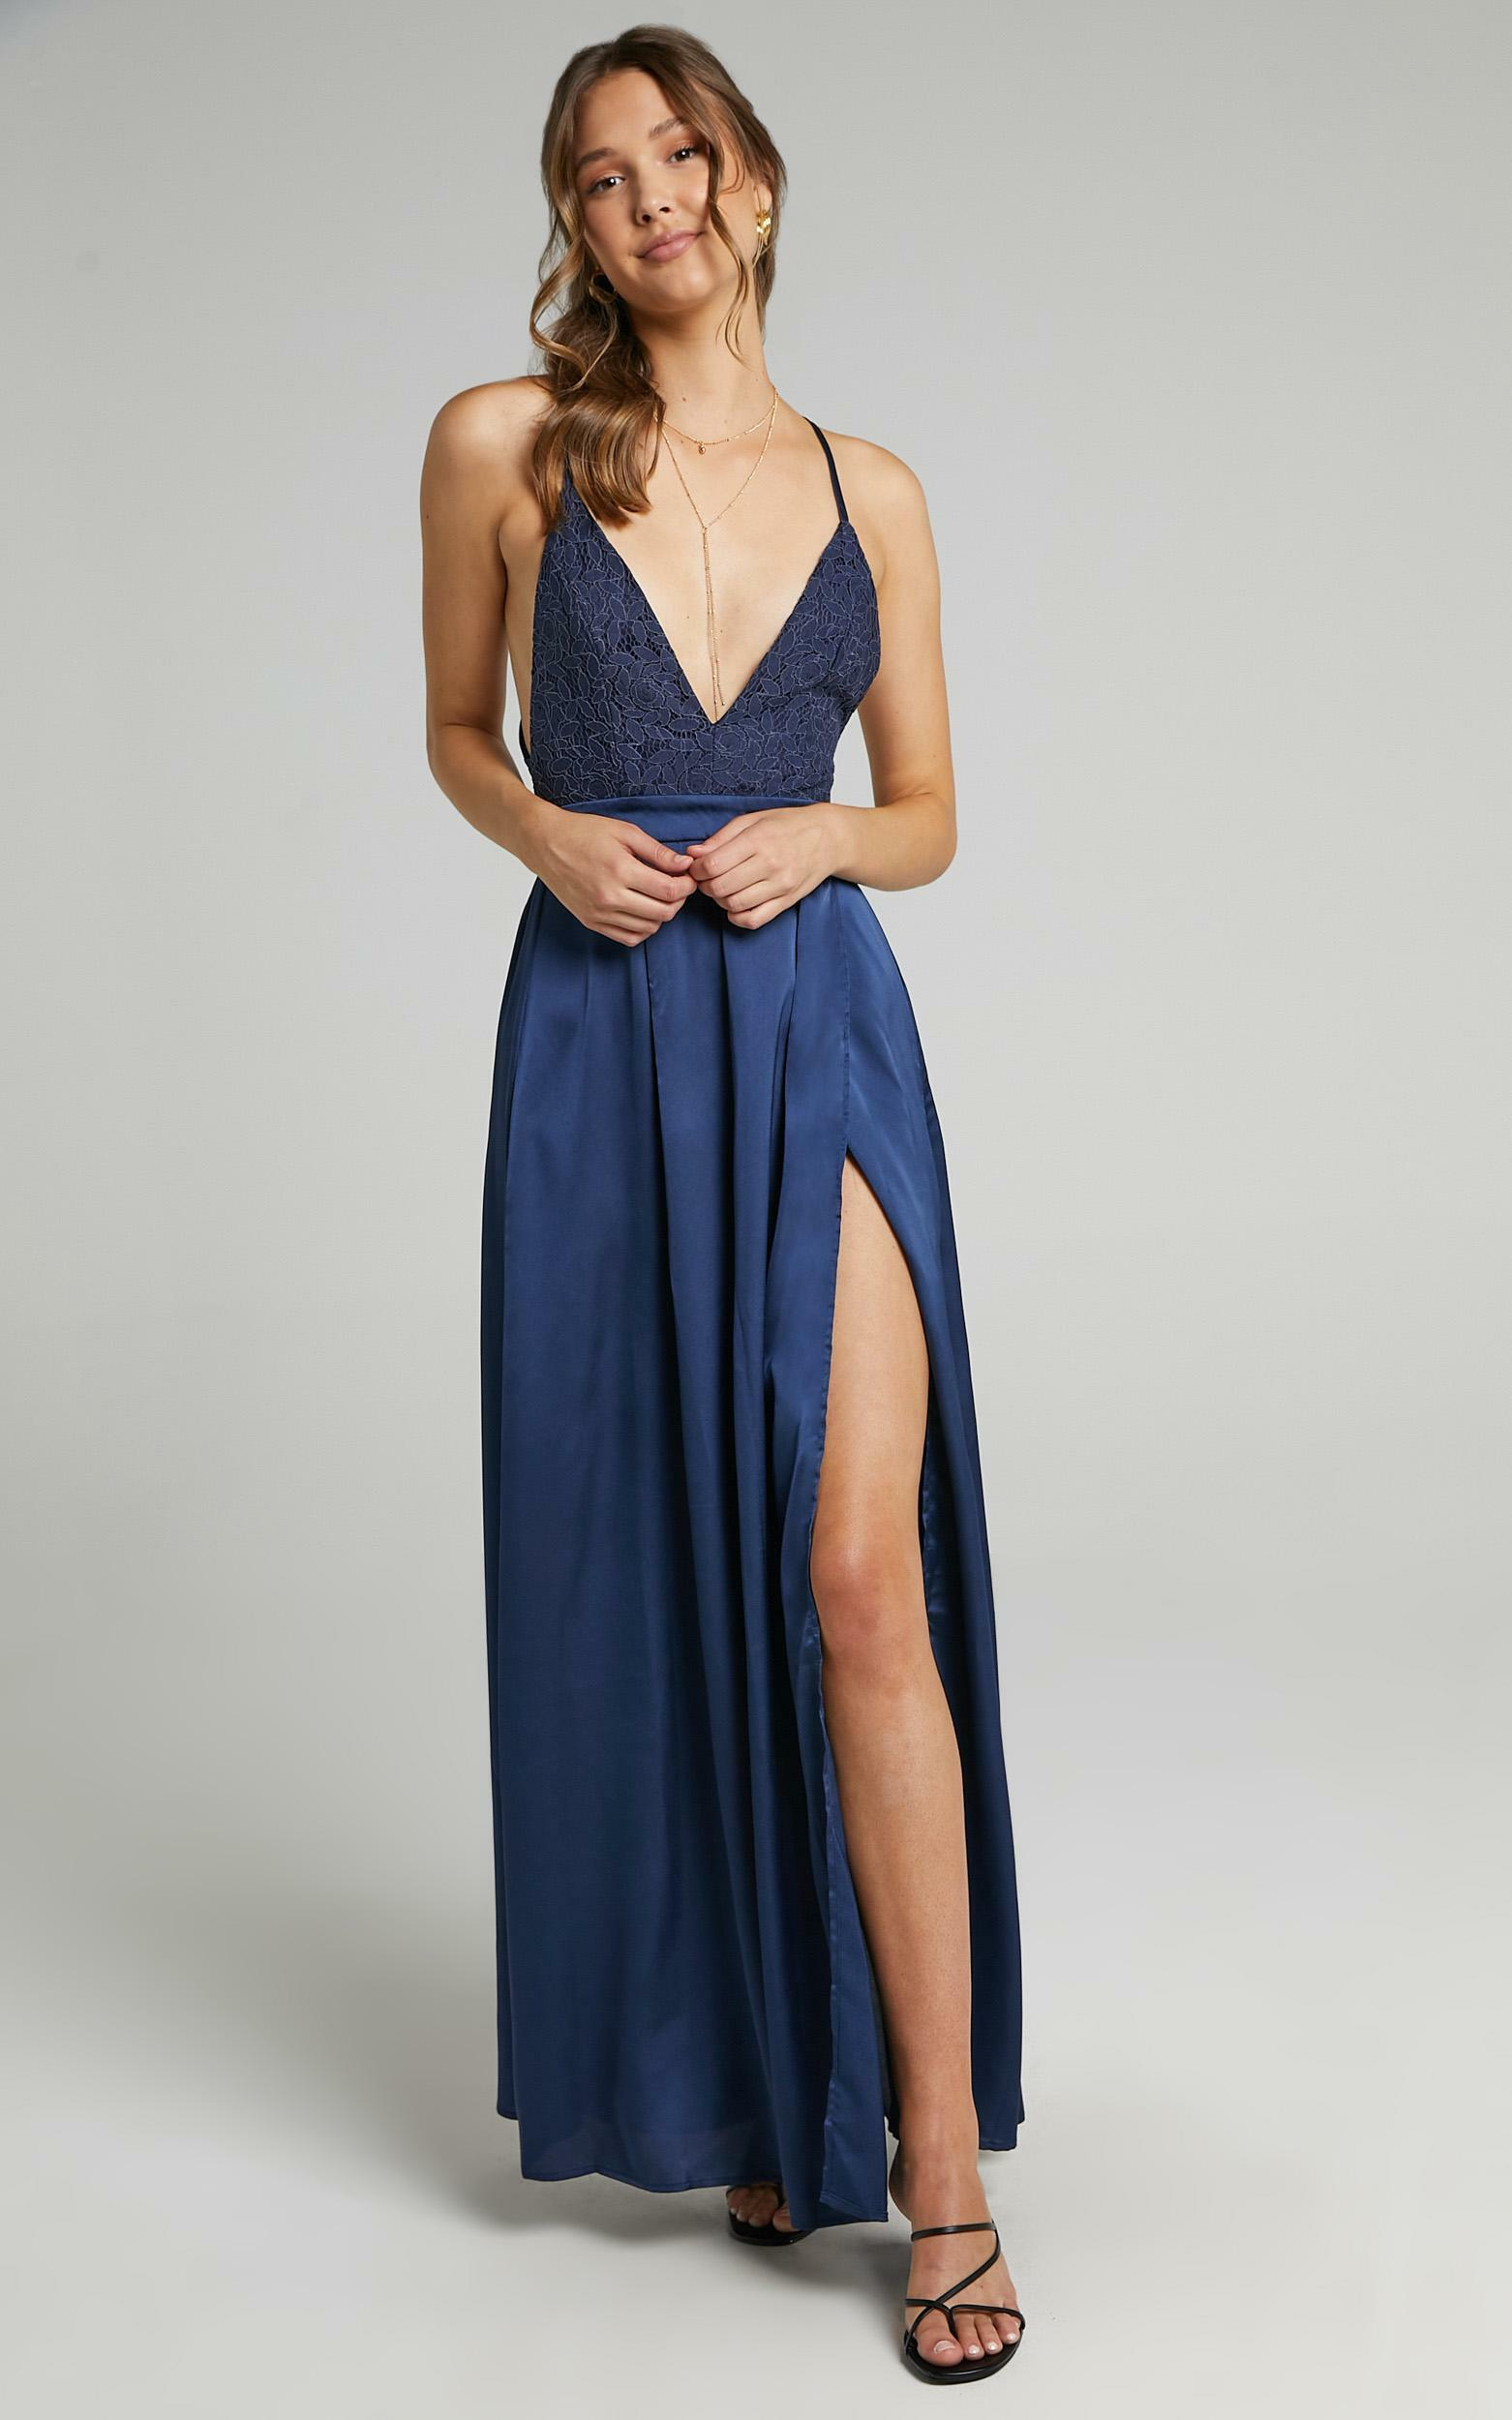 Inspired Tribe Plunge Neckline Thigh Split Maxi Dress in Navy - 04, NVY3, hi-res image number null